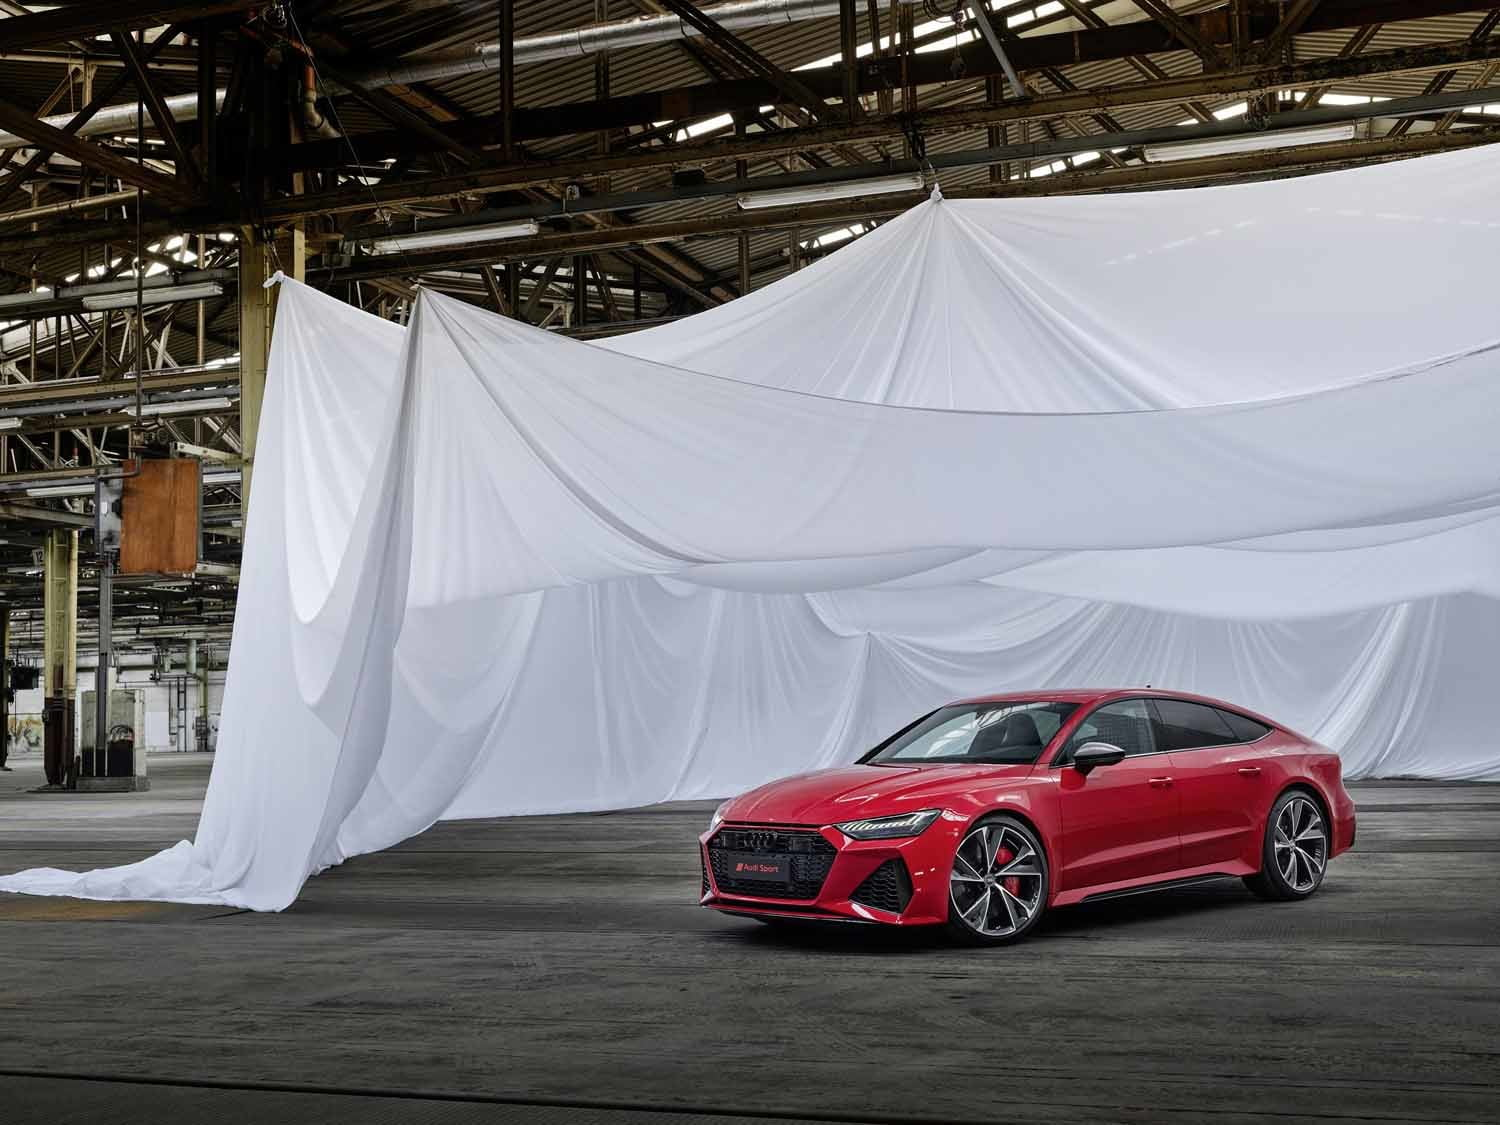 2020 audi rs 7 sportback packs 600 horsepower intuitive infotainment system 6